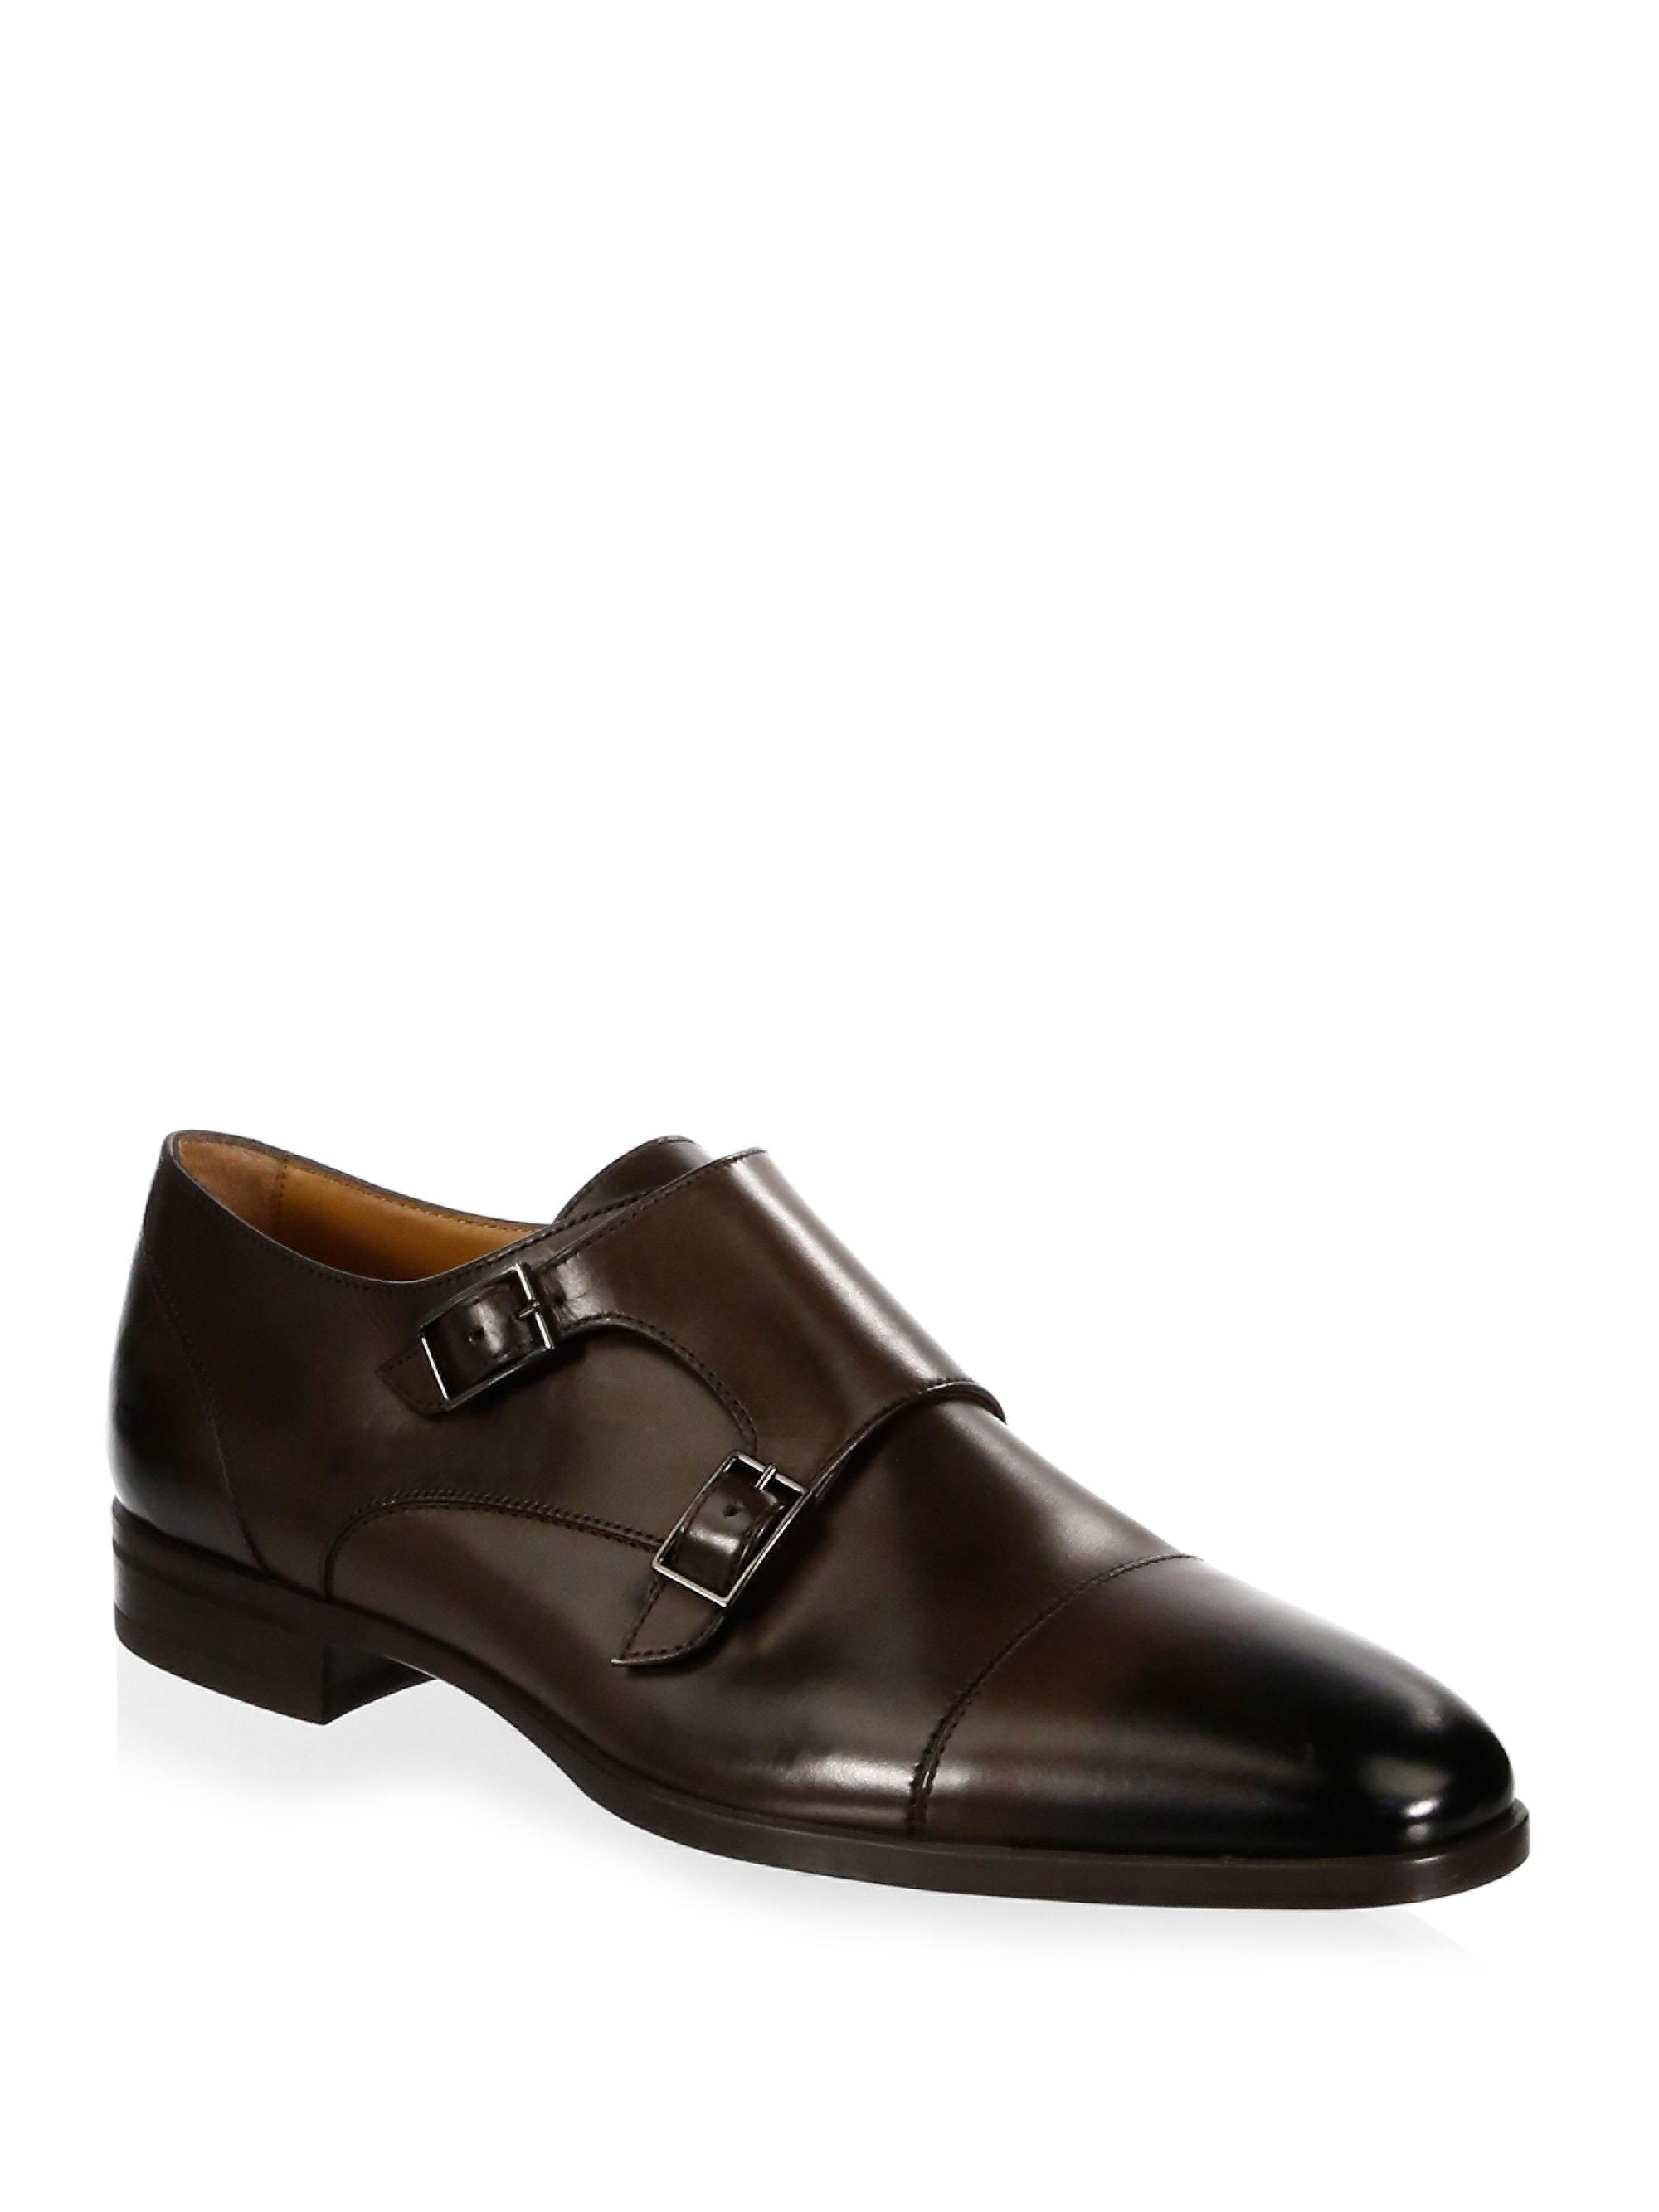 HUGO BOSSKensington Leather Double Monk-Strap Shoes Rg1fCwwa